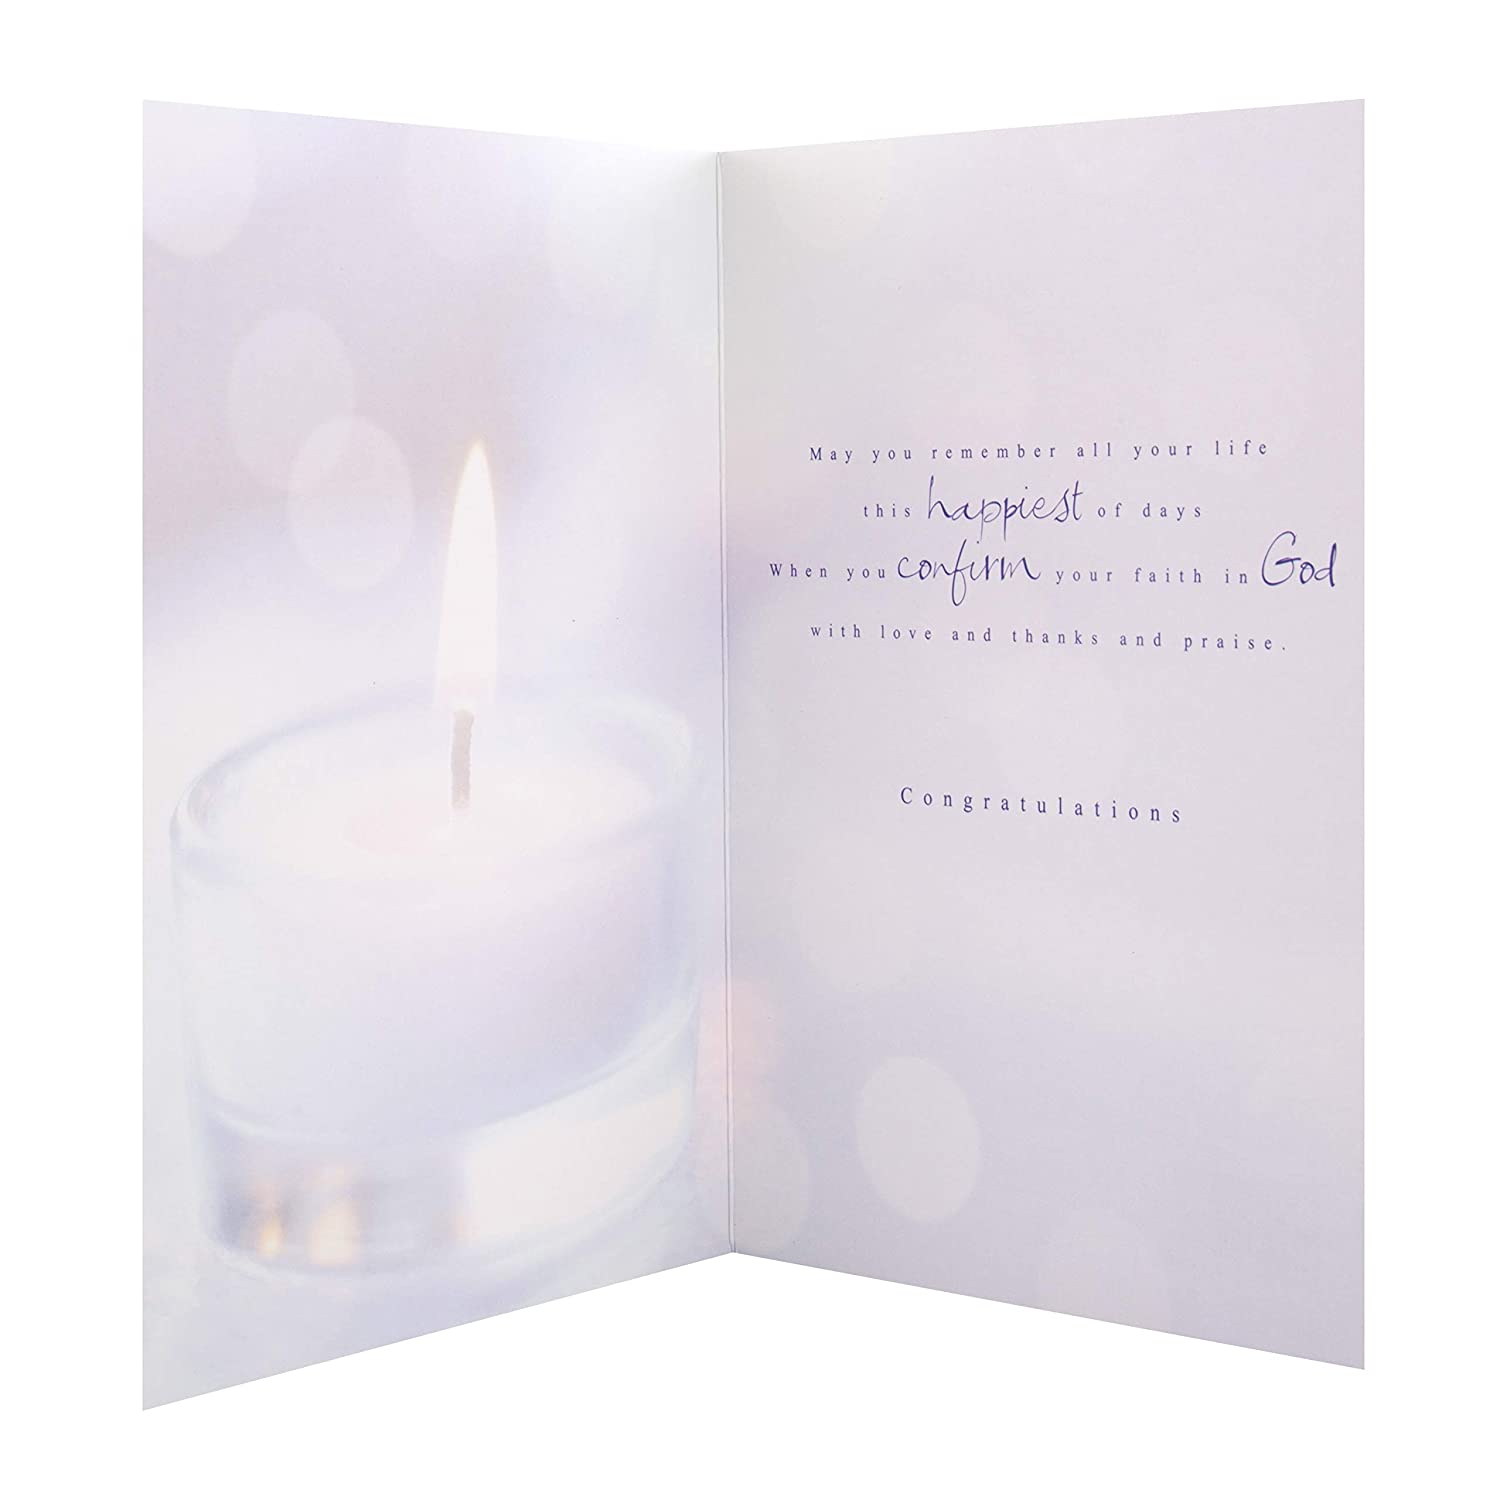 Confirmation Card from Hallmark Contemporary Photographic Design with Silver Foil Lettering /& Details